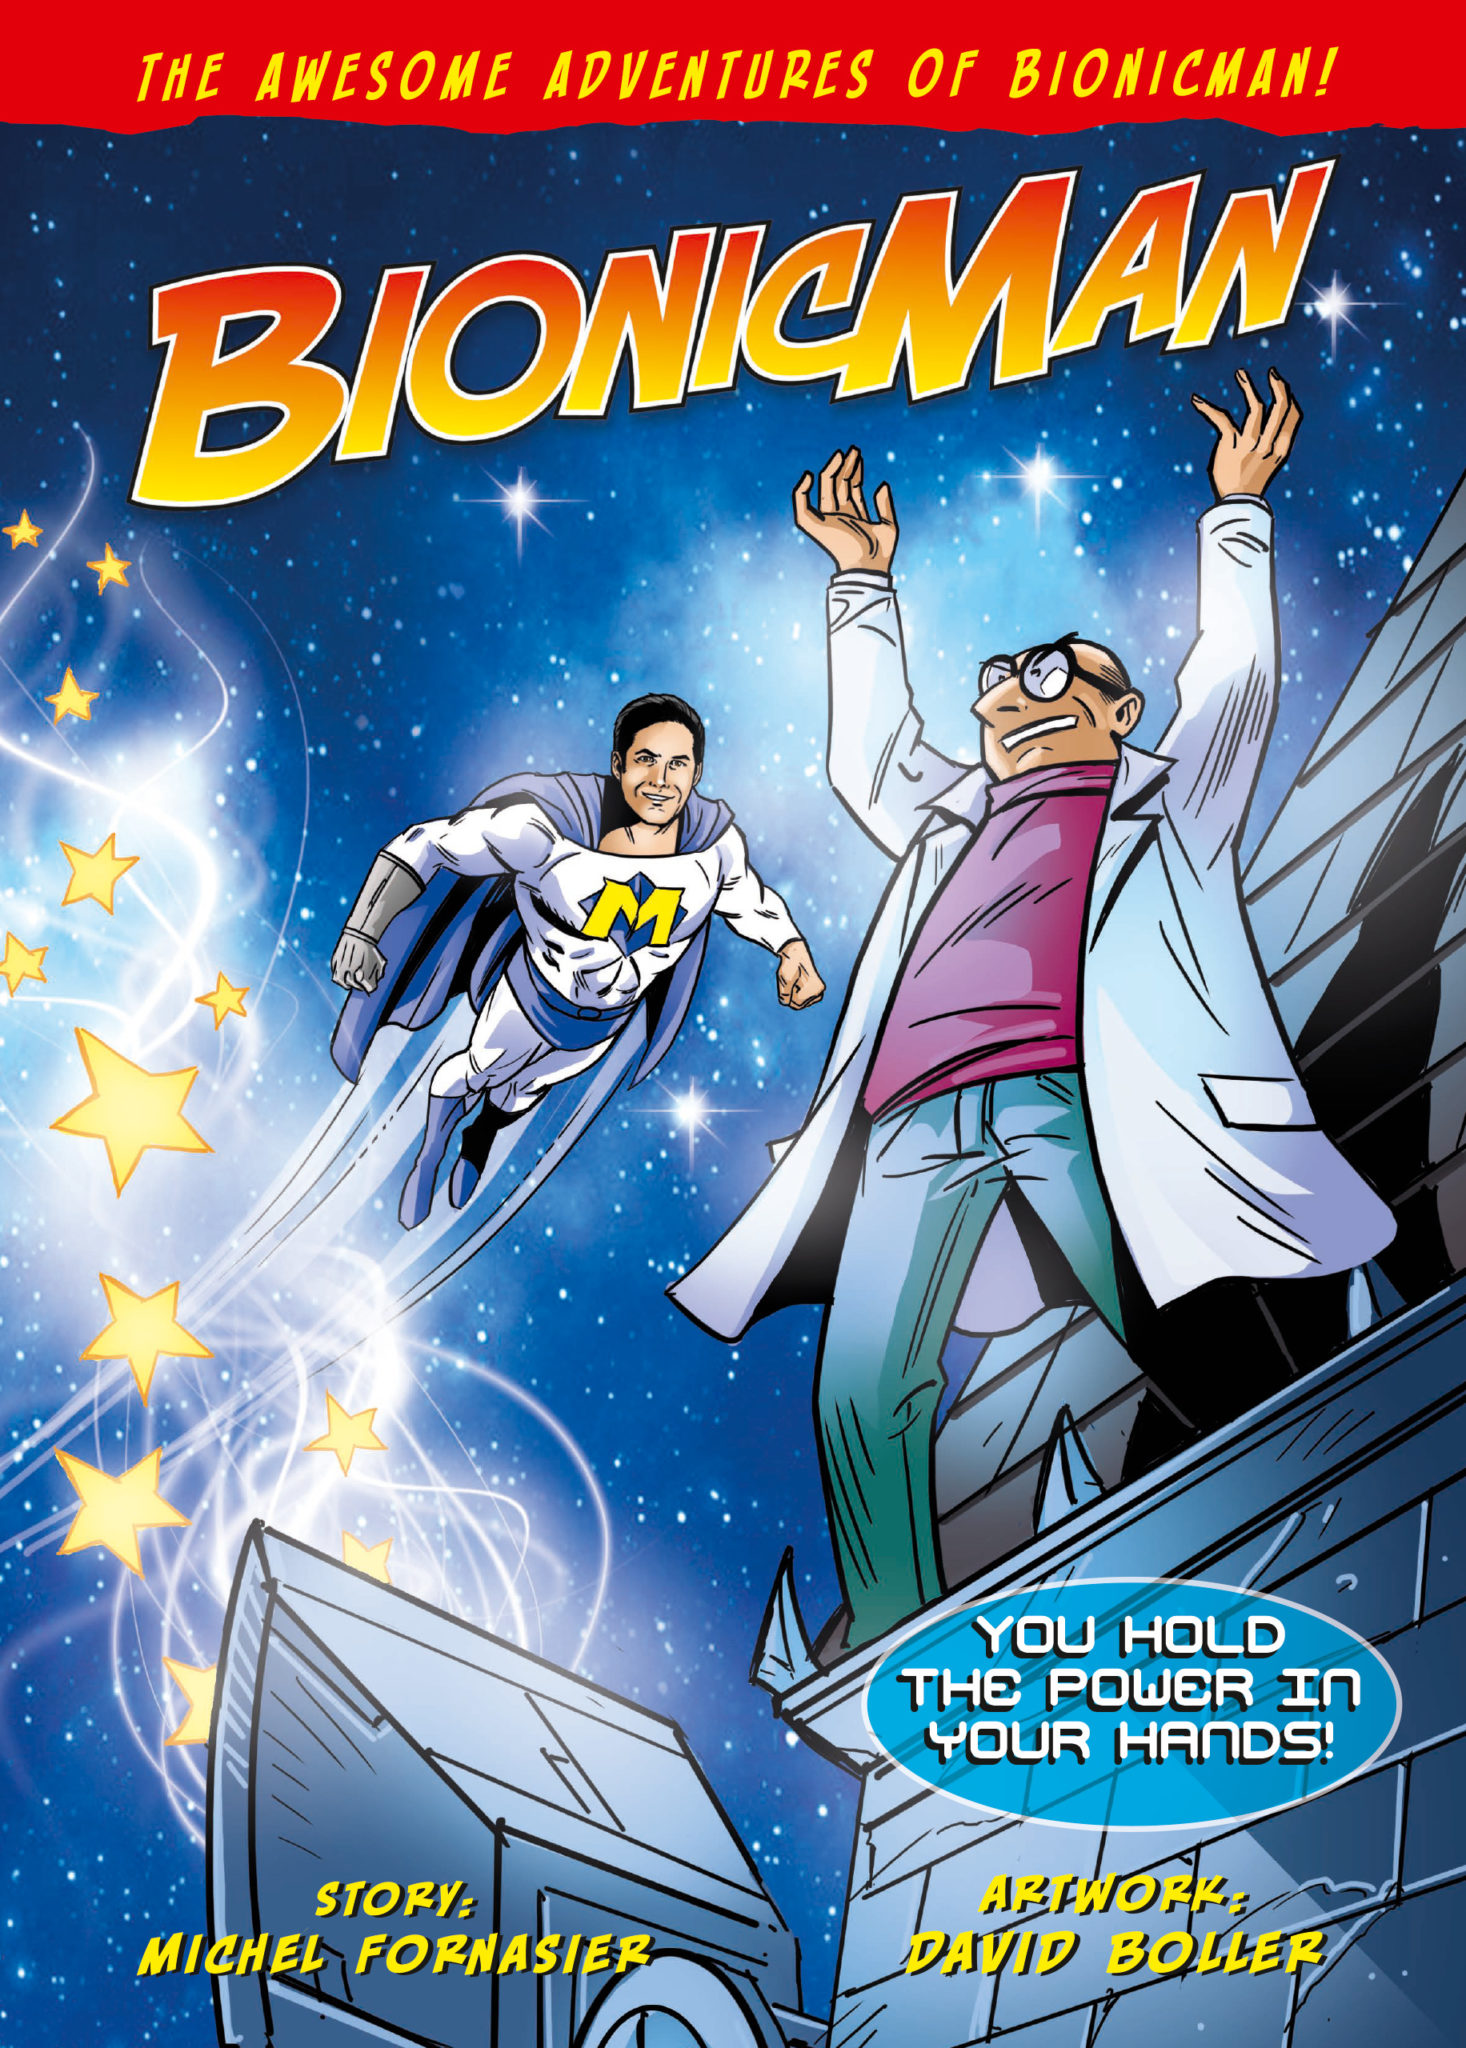 the-awesome-adventures-of-bionicman-–-you-hold-the-power-in-your-hands